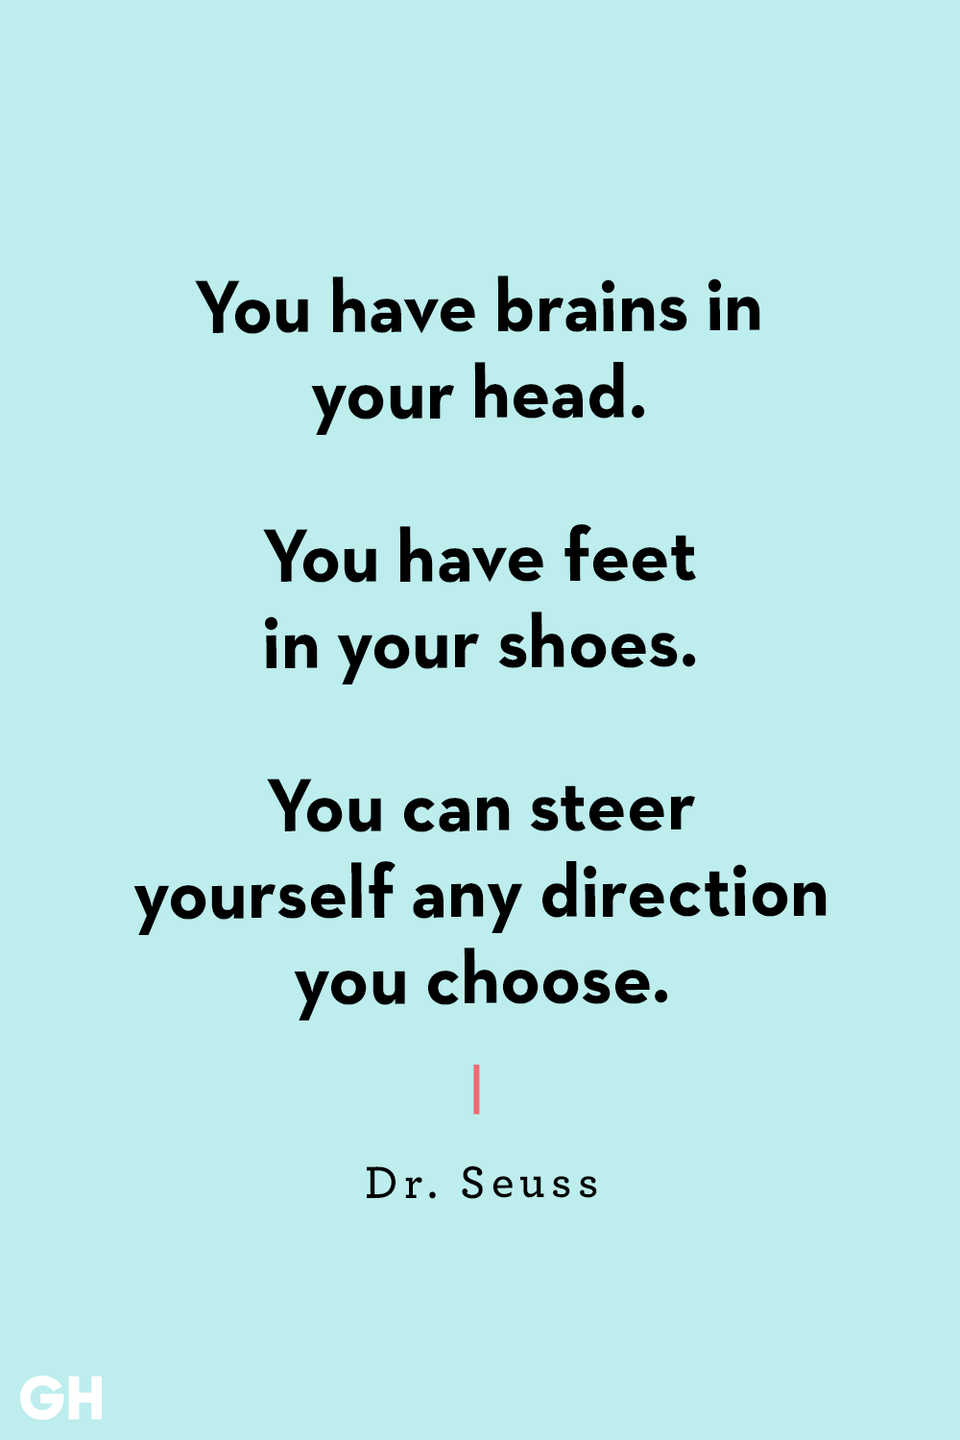 <p>You have brains in your head. </p><p>You have feet in your shoes. </p><p>You can steer yourself any direction you choose.</p>